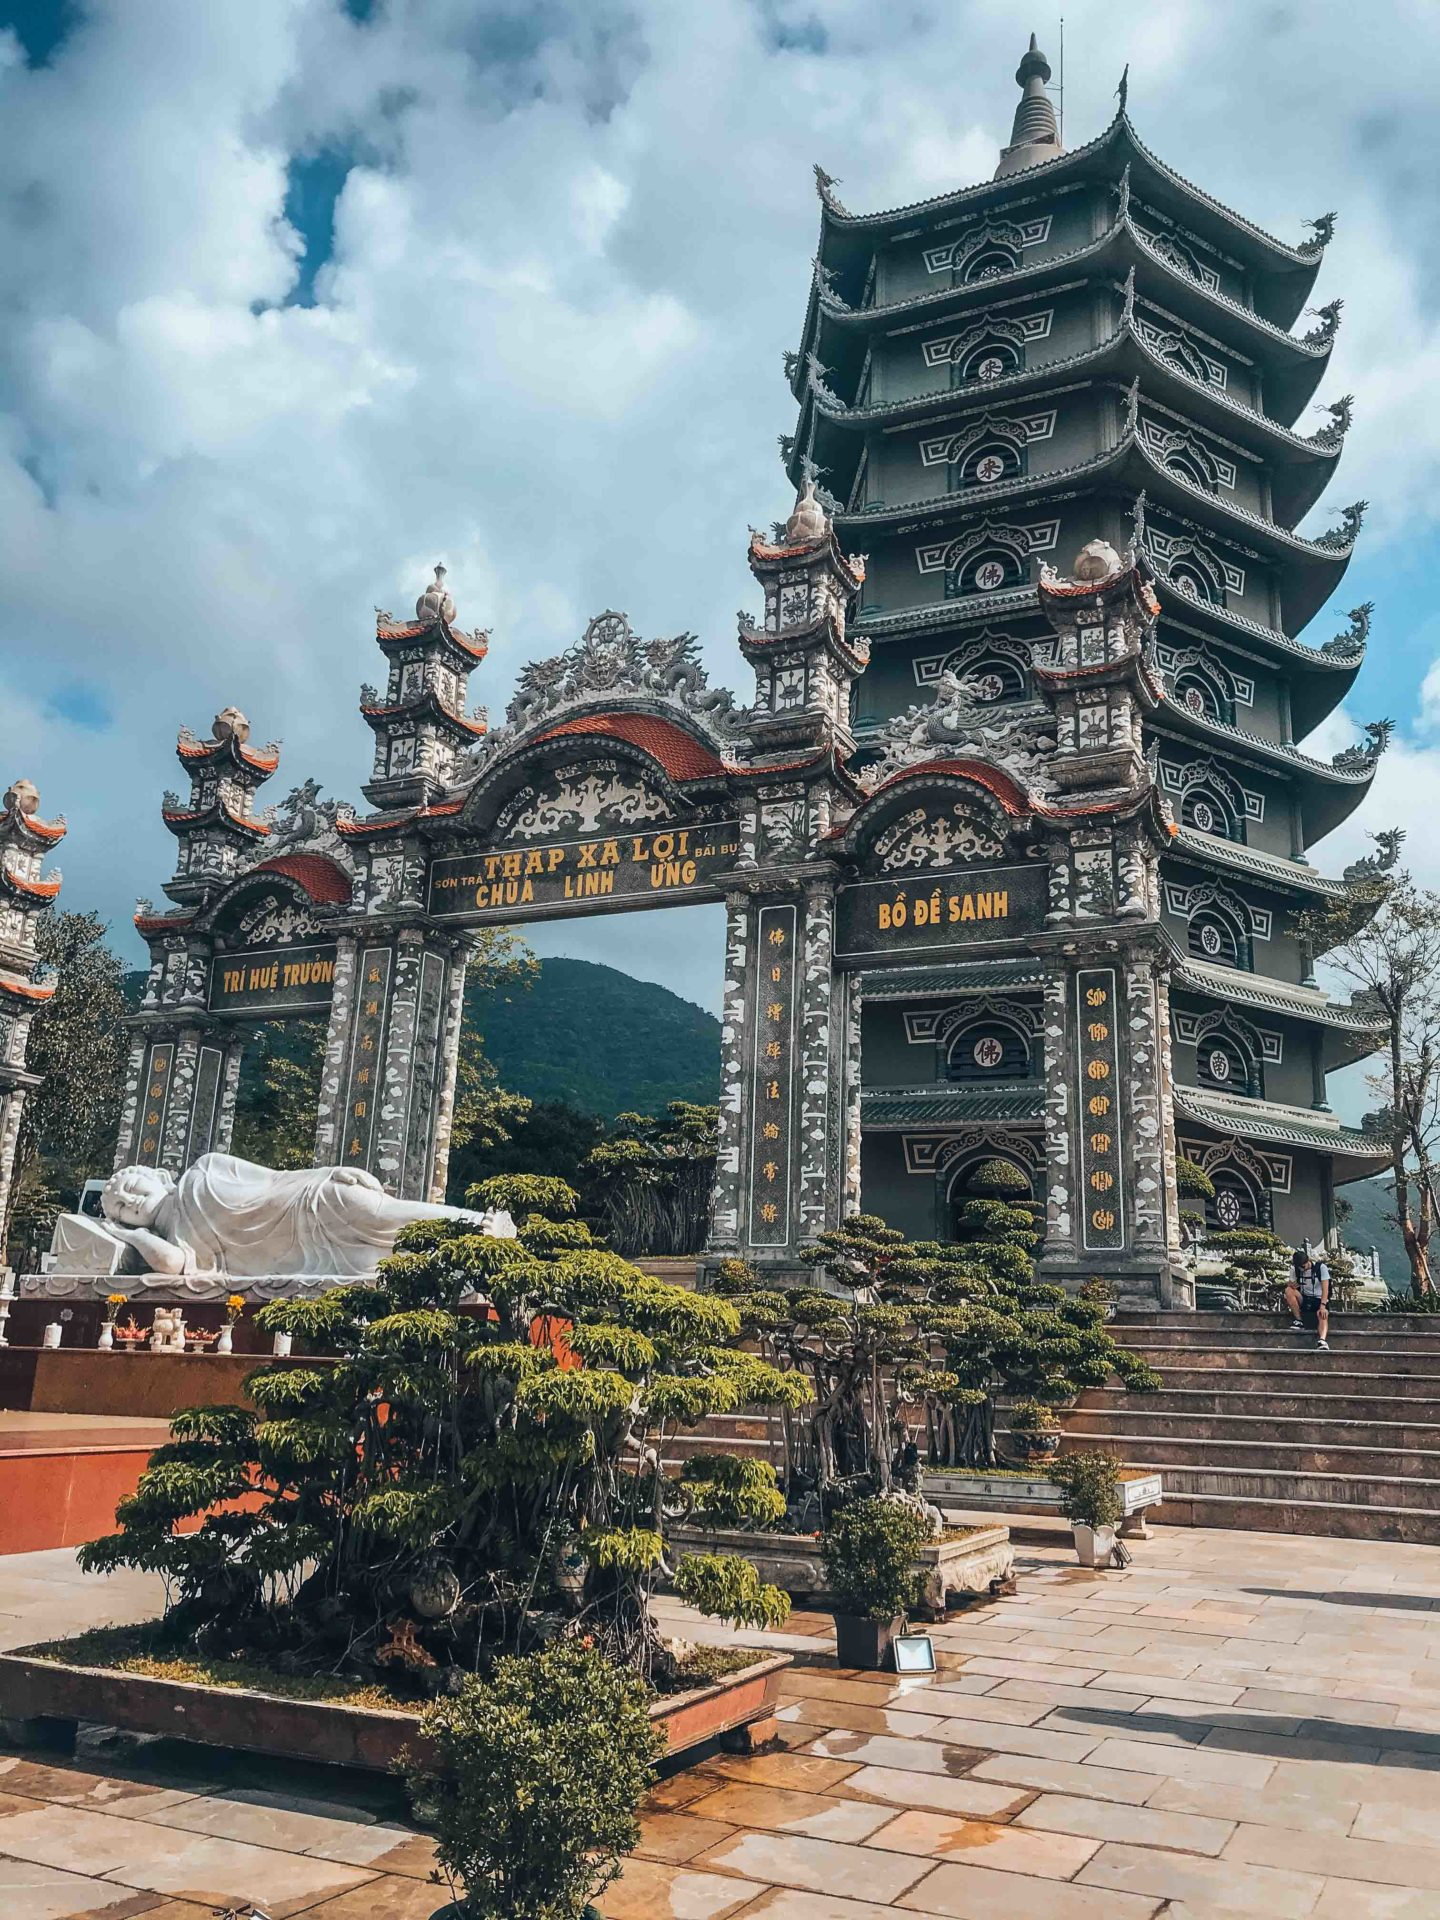 The Chua Linh Ung Pagoda in Da Nang